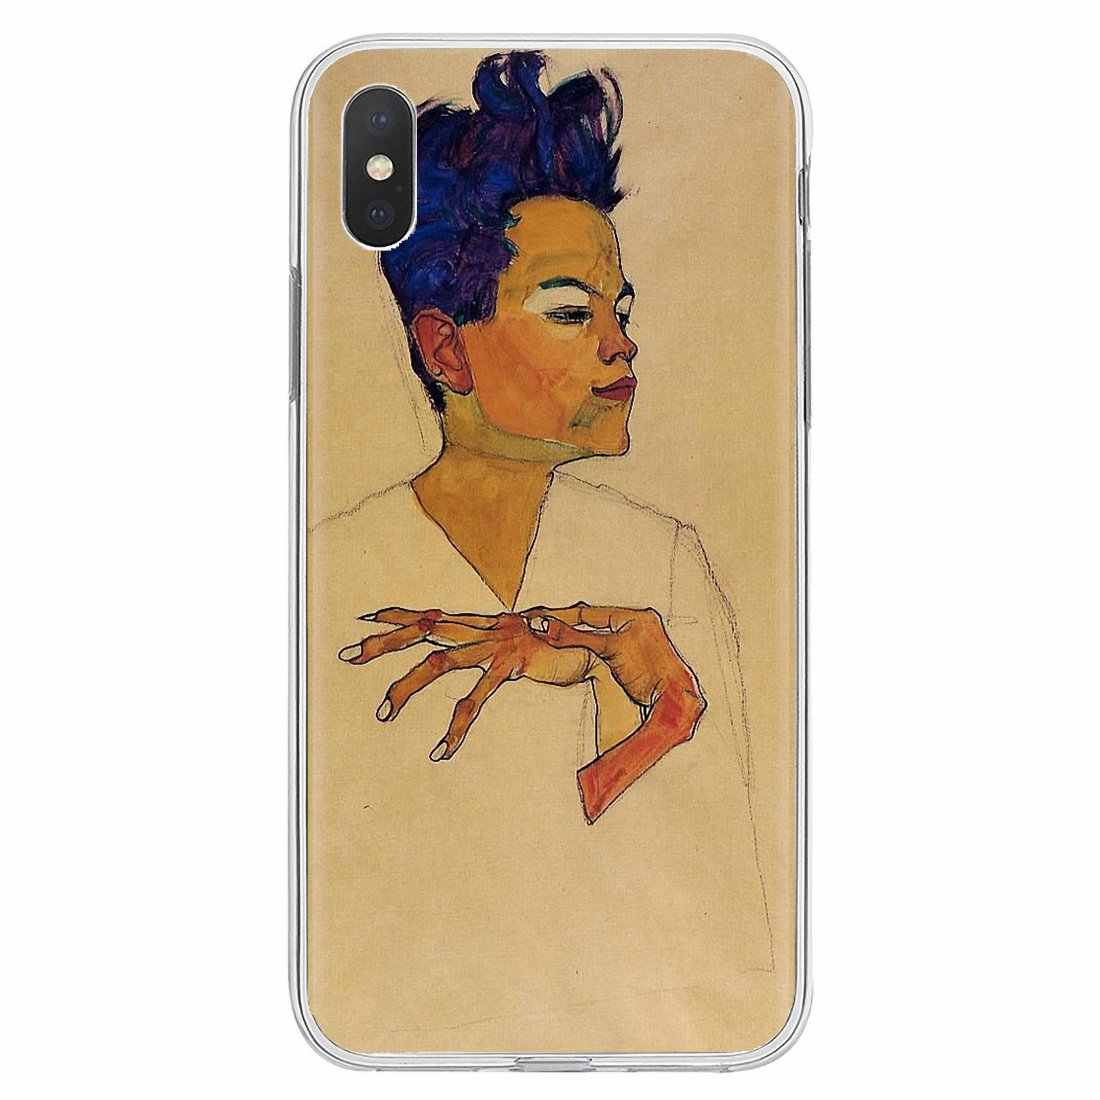 Inspirational Silicone Phone Case For iPhone 11 Pro 4 4S 5 5S SE 5C 6 6S 7 8 X XR XS Plus Max For iPod Touch Egon Schiele